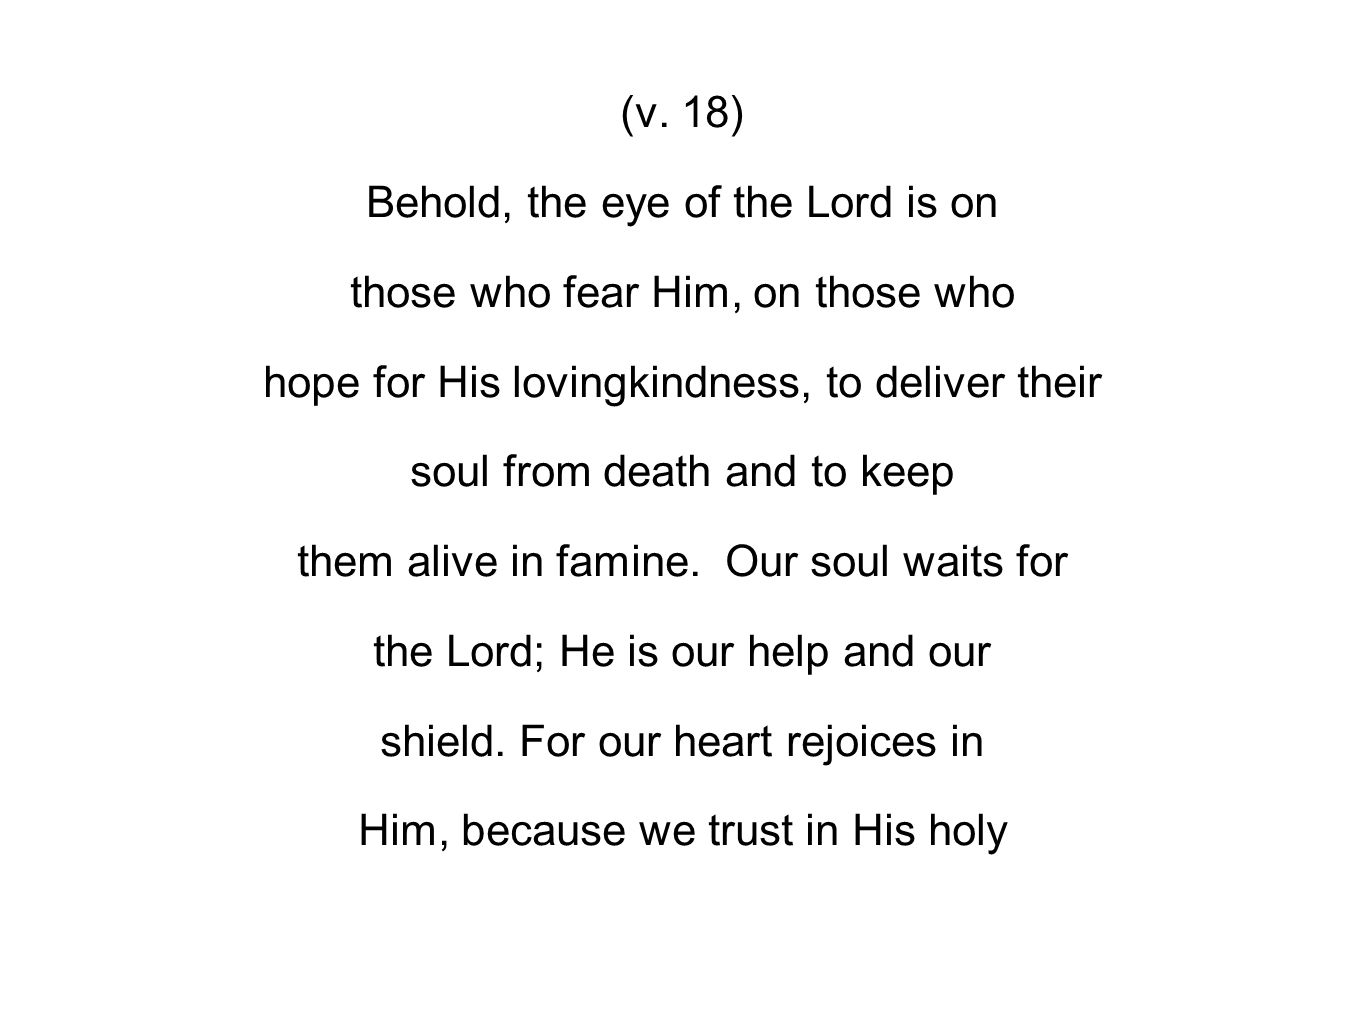 (v. 18) Behold, the eye of the Lord is on those who fear Him, on those who hope for His lovingkindness, to deliver their soul from death and to keep t